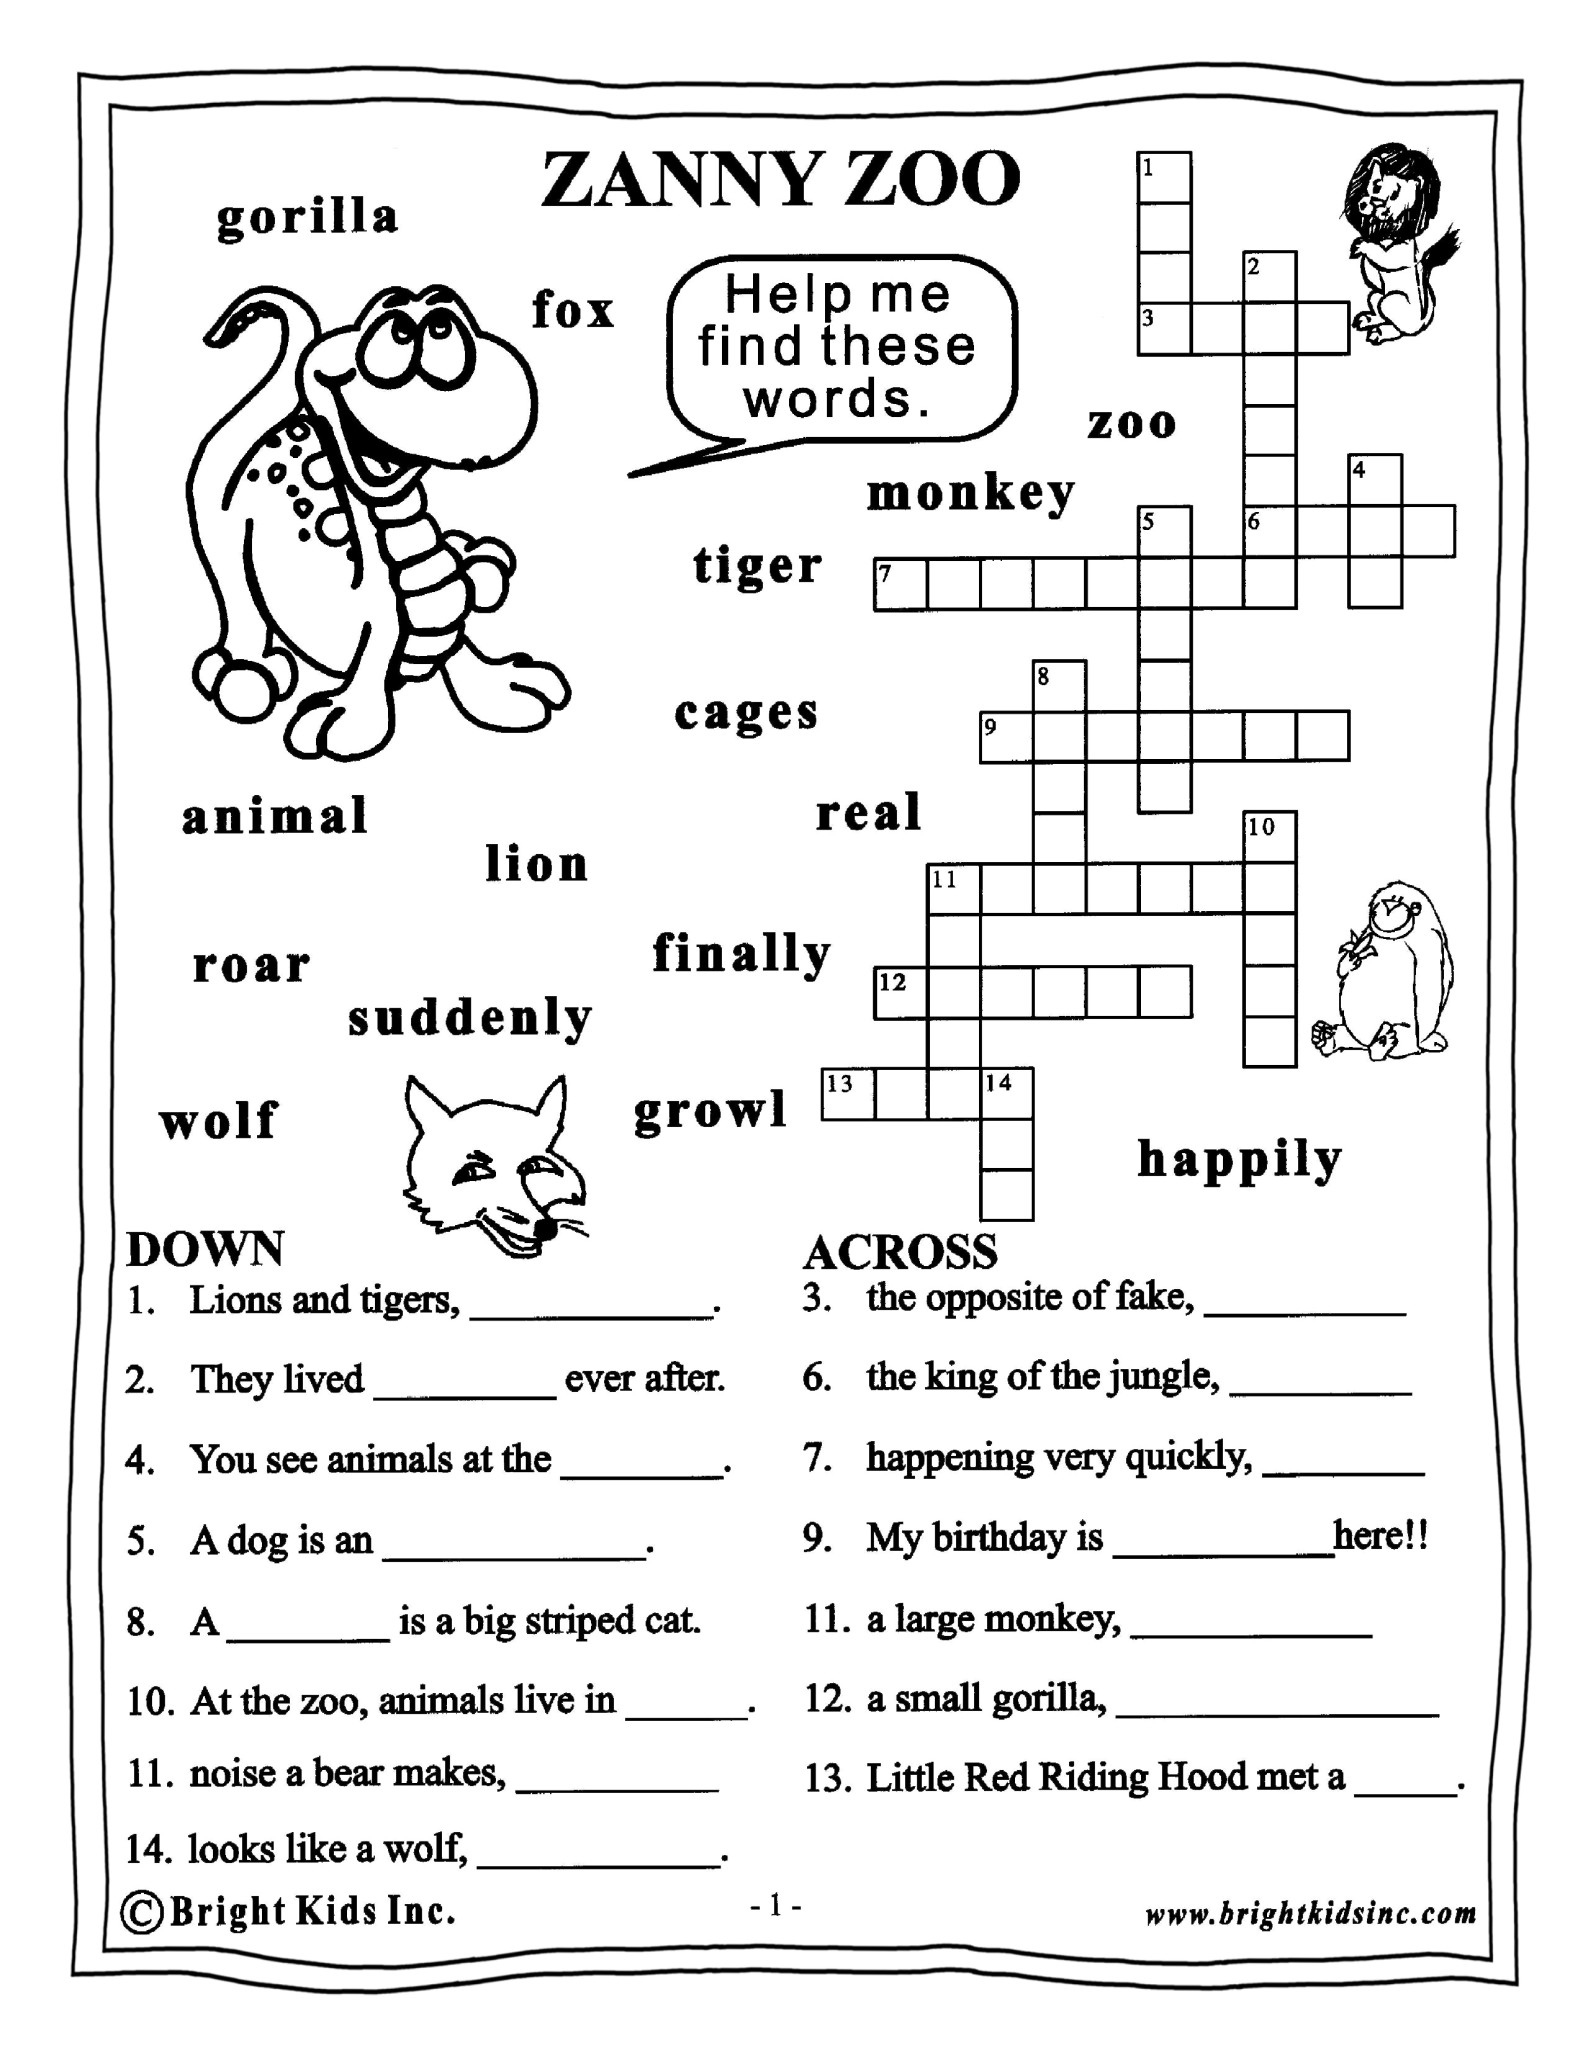 Worksheet 3 Grade grade 3 english word power workout